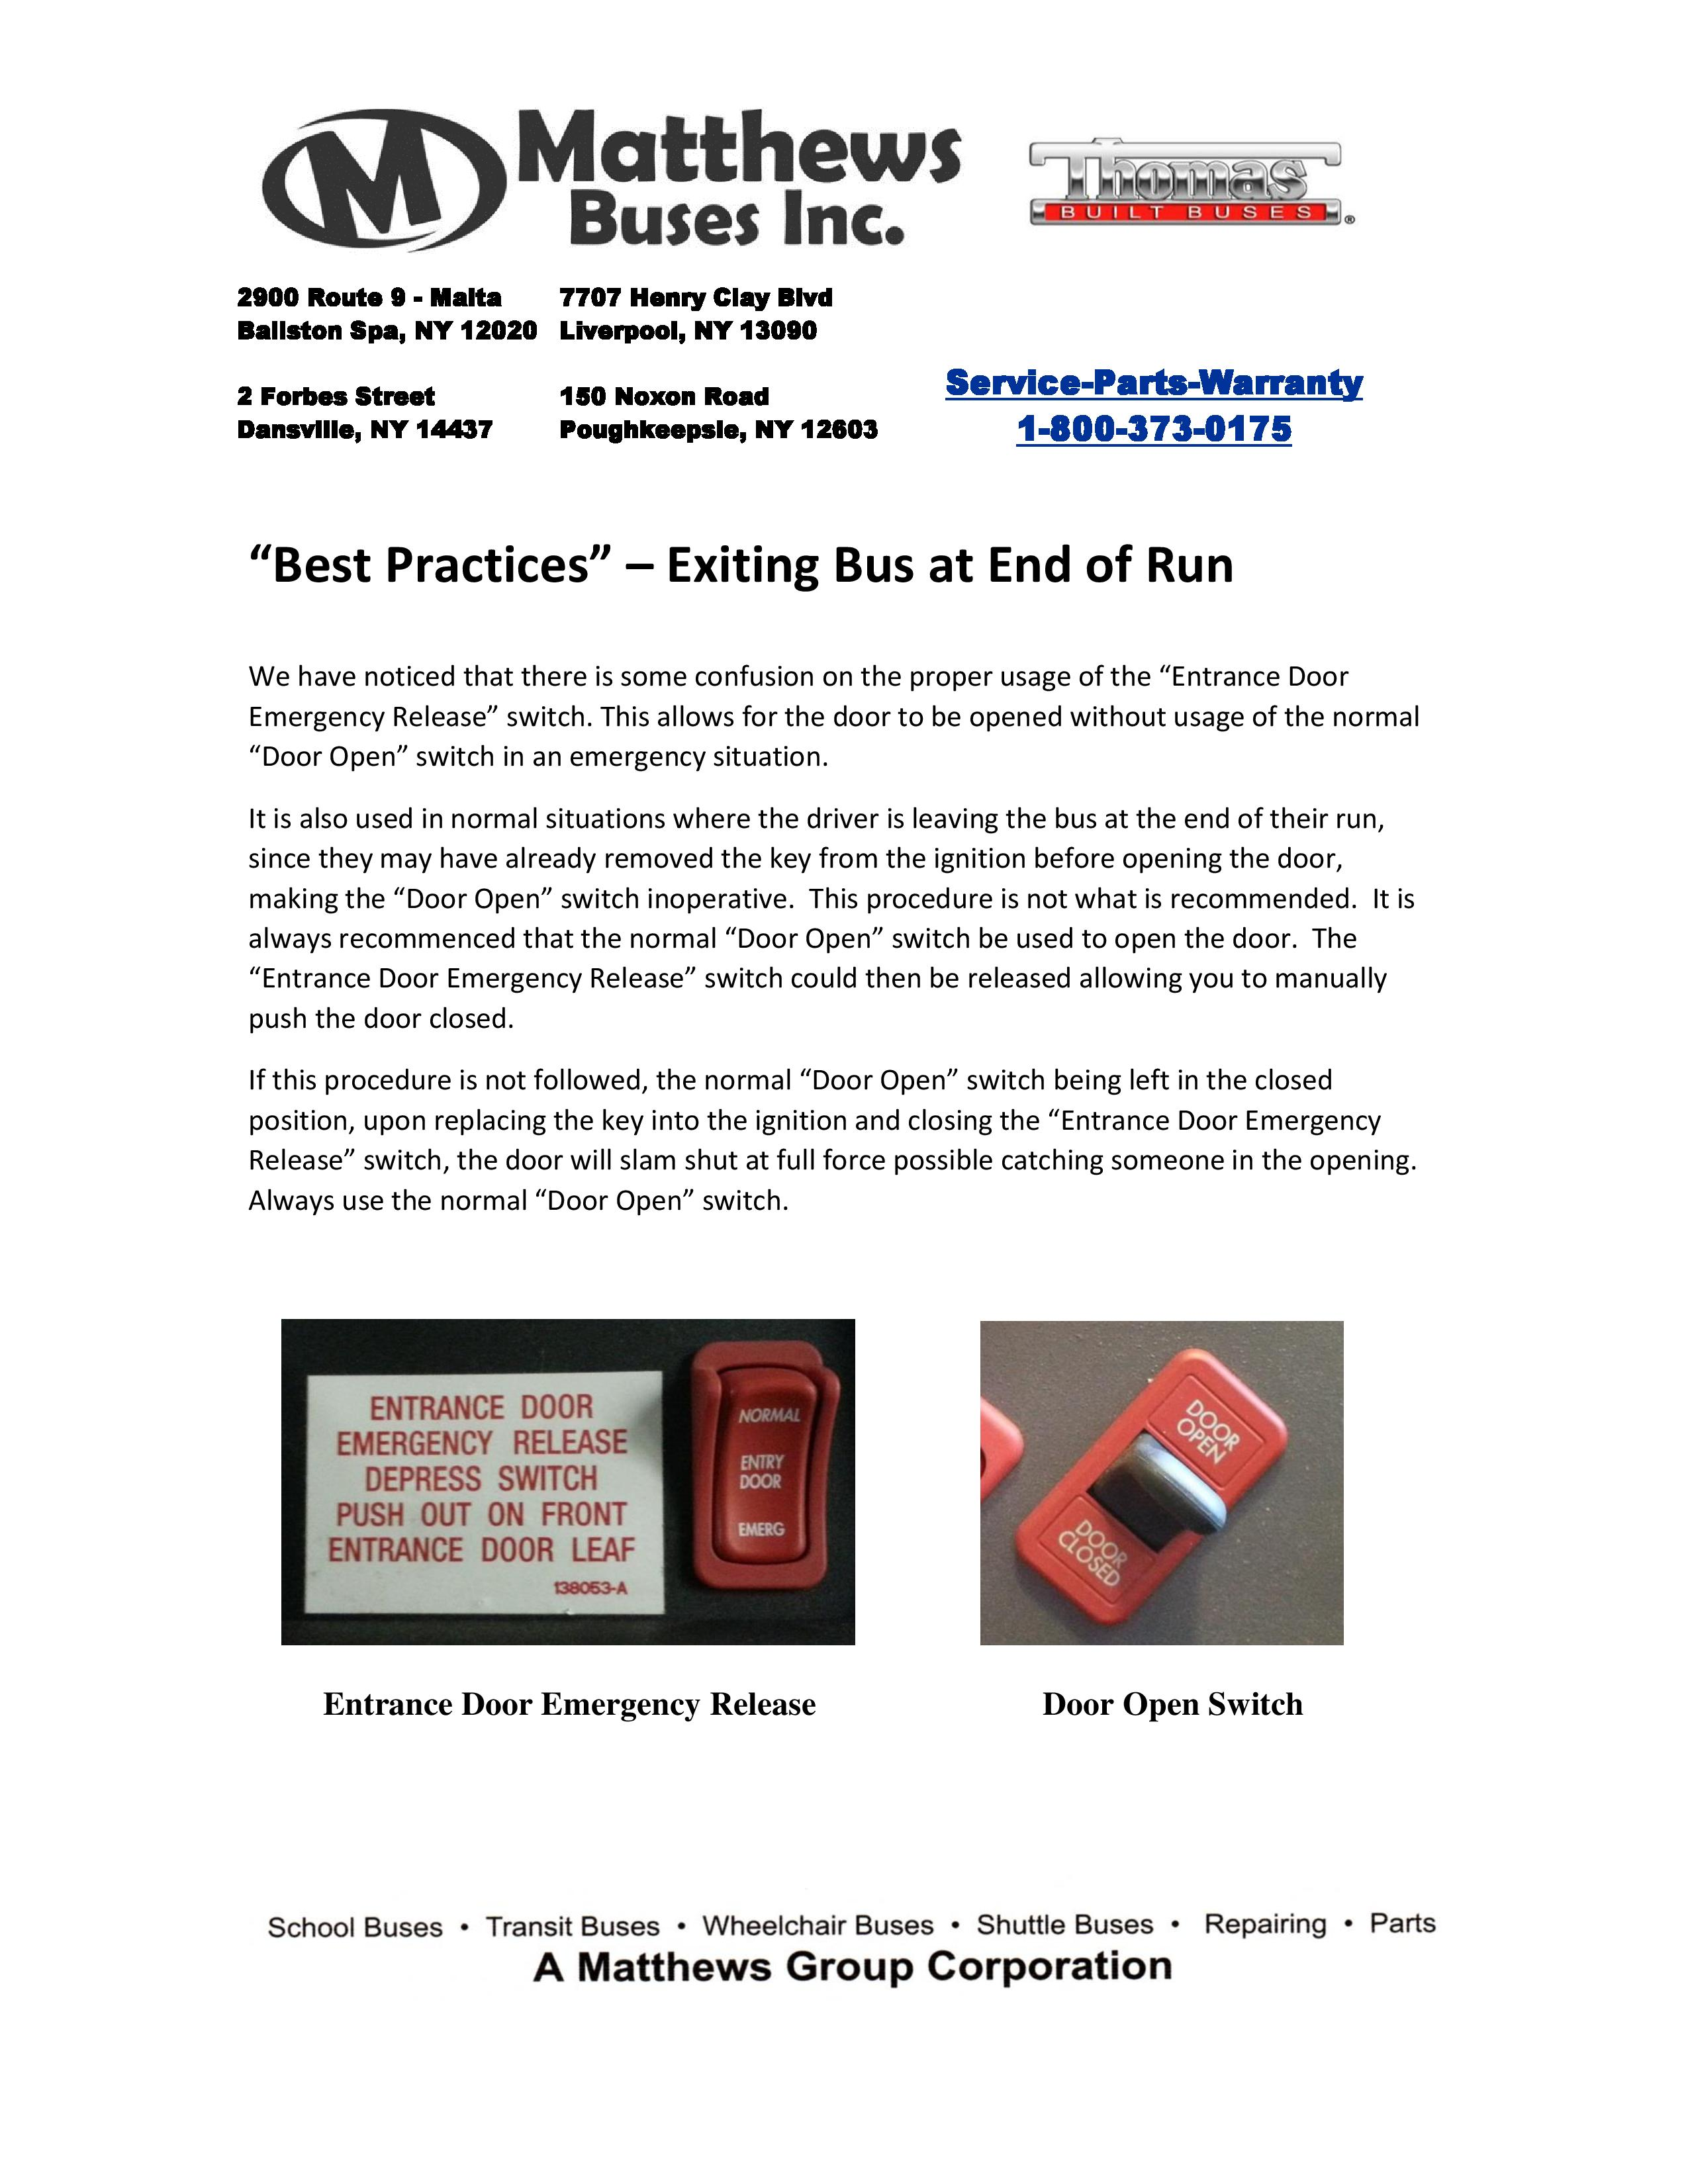 Matthews Buses Training Resources Bus Training Materials